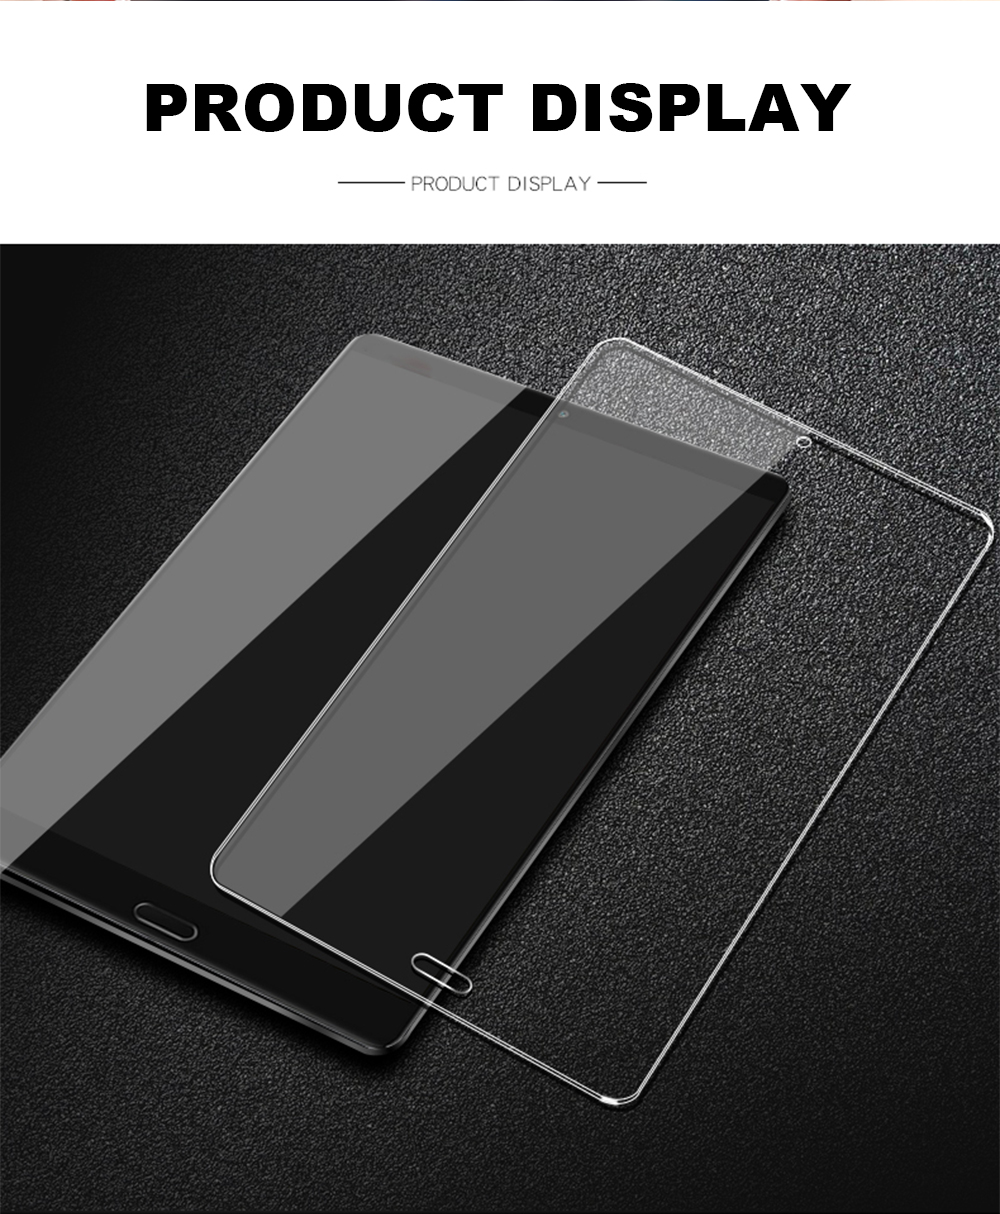 For Xiaomi mi pad mipad 4 Plus 8 10.1inch Protective Glass Film 9H Full Coverage Tempered Glass For mipad 2 3 Screen Protector (1)